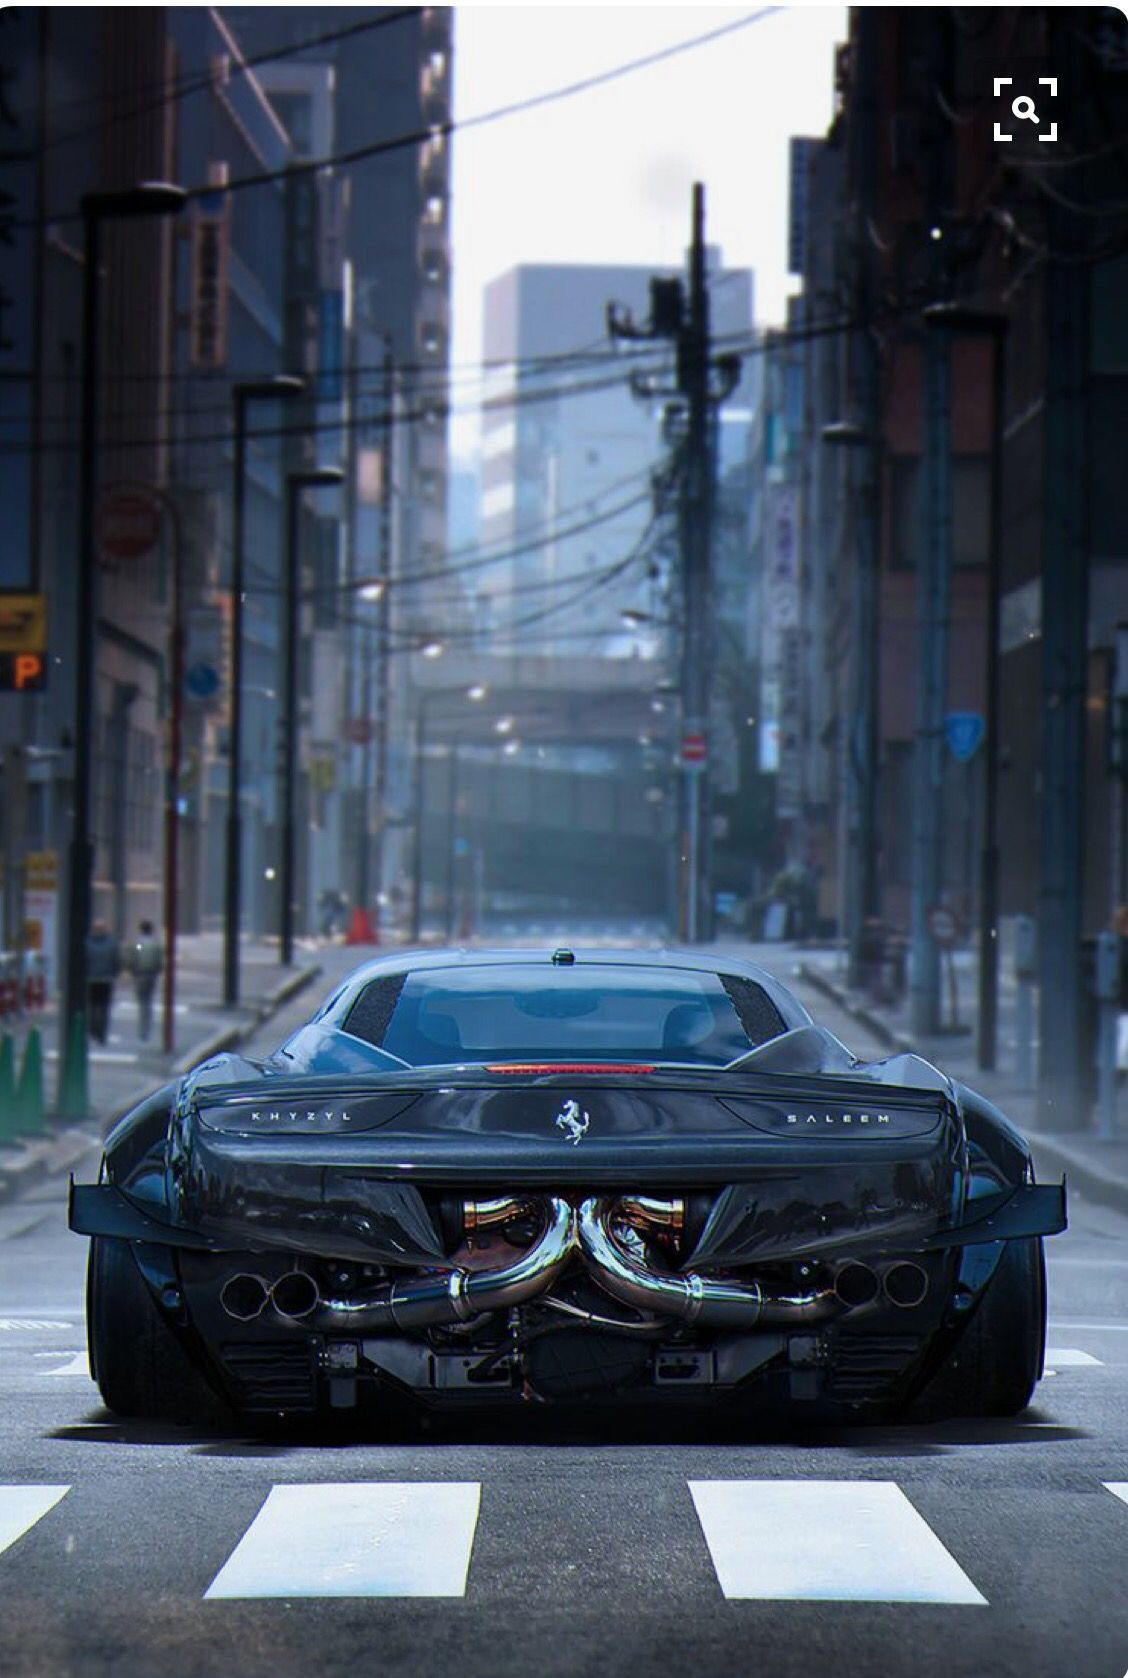 Pin By Bornface Chirwa On Turbos And Superchargers With Images Sports Car Wallpaper Top Luxury Cars Fast Sports Cars